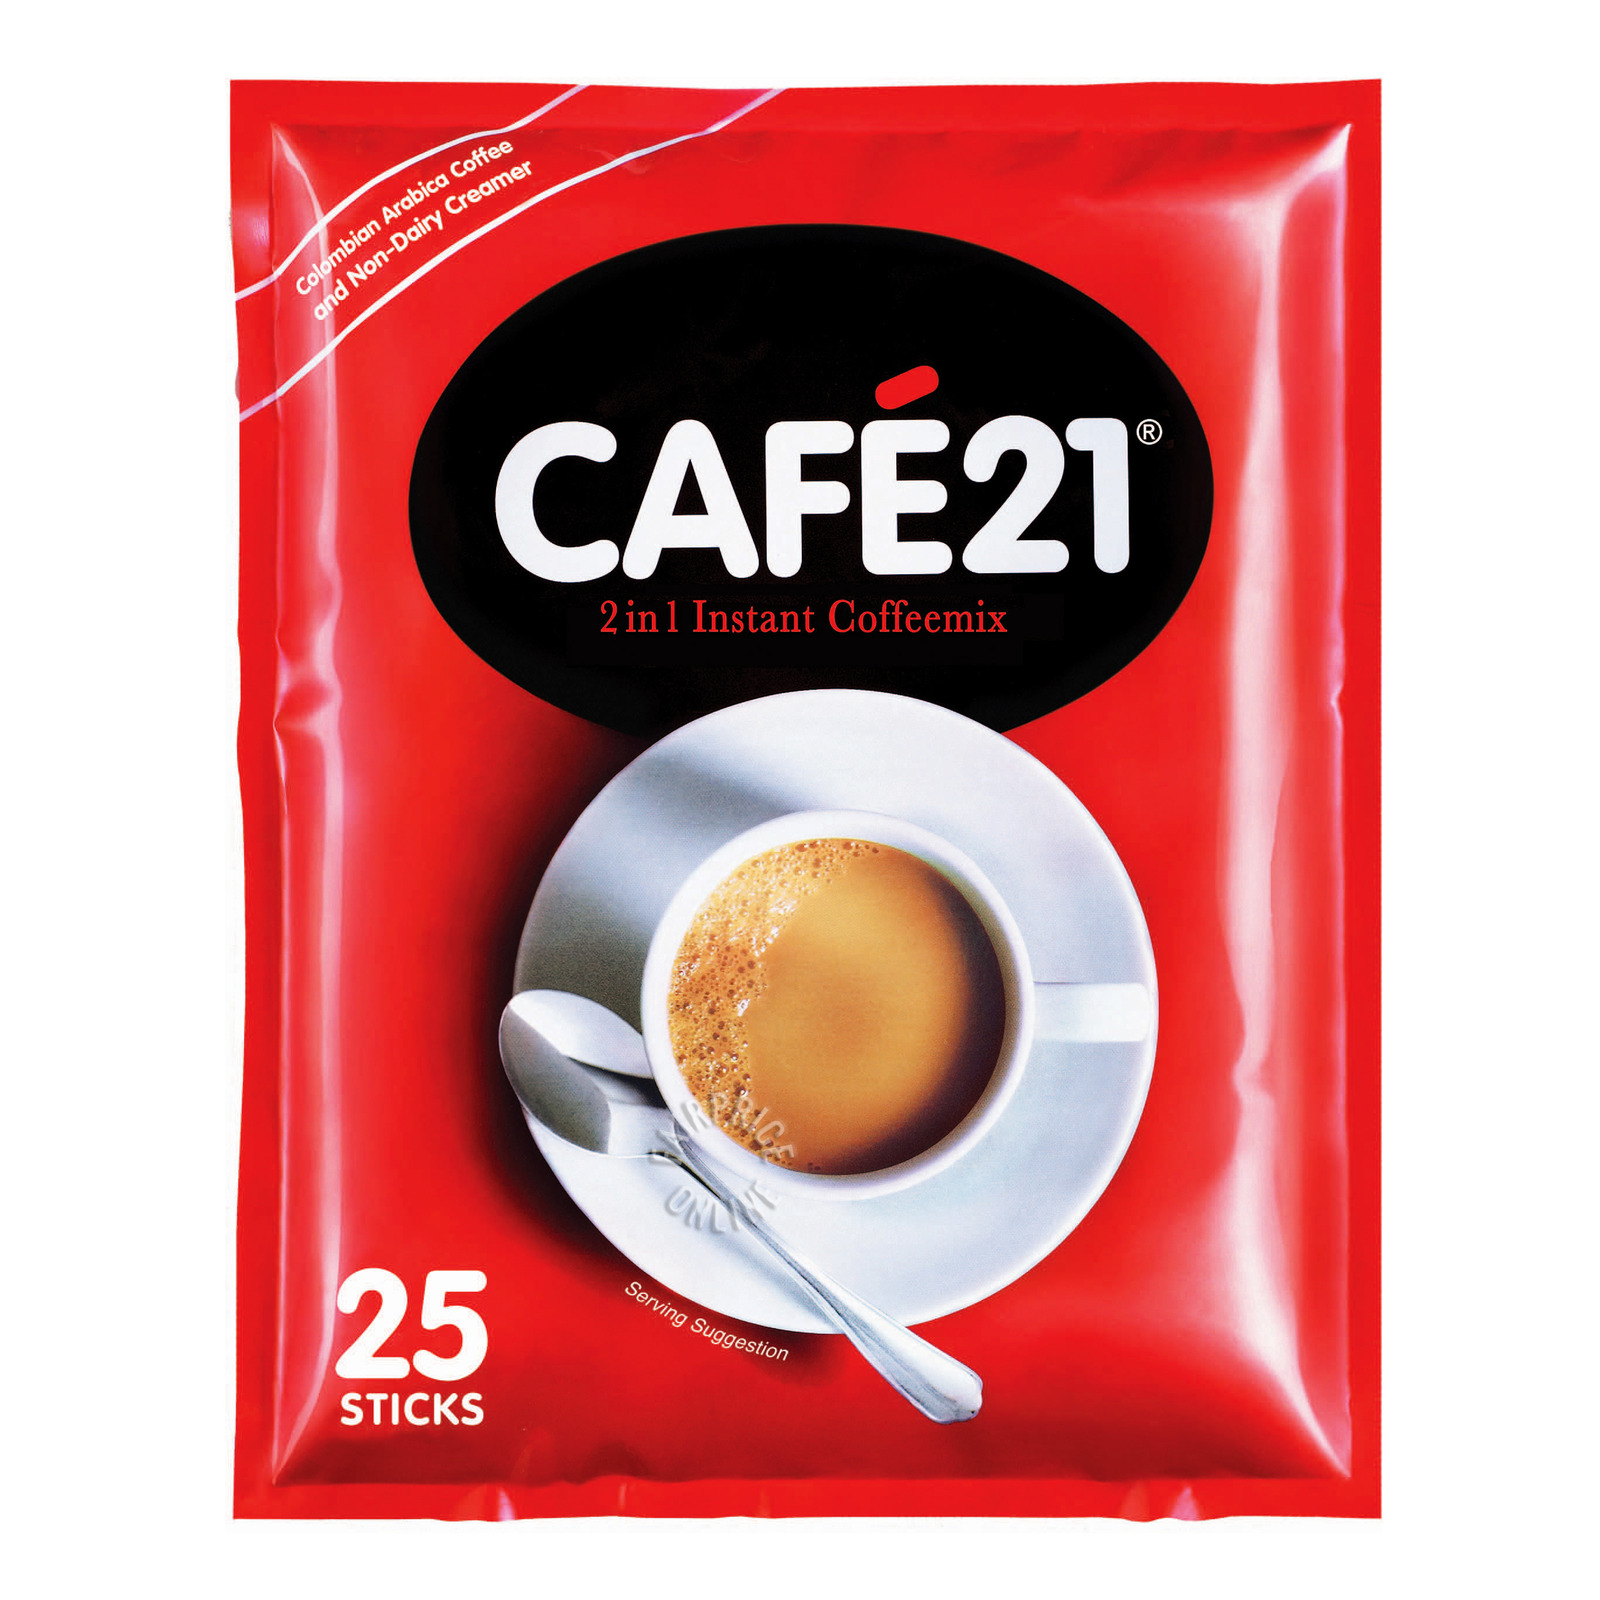 Cafe21 2 in 1 Instant Coffeemix - Original